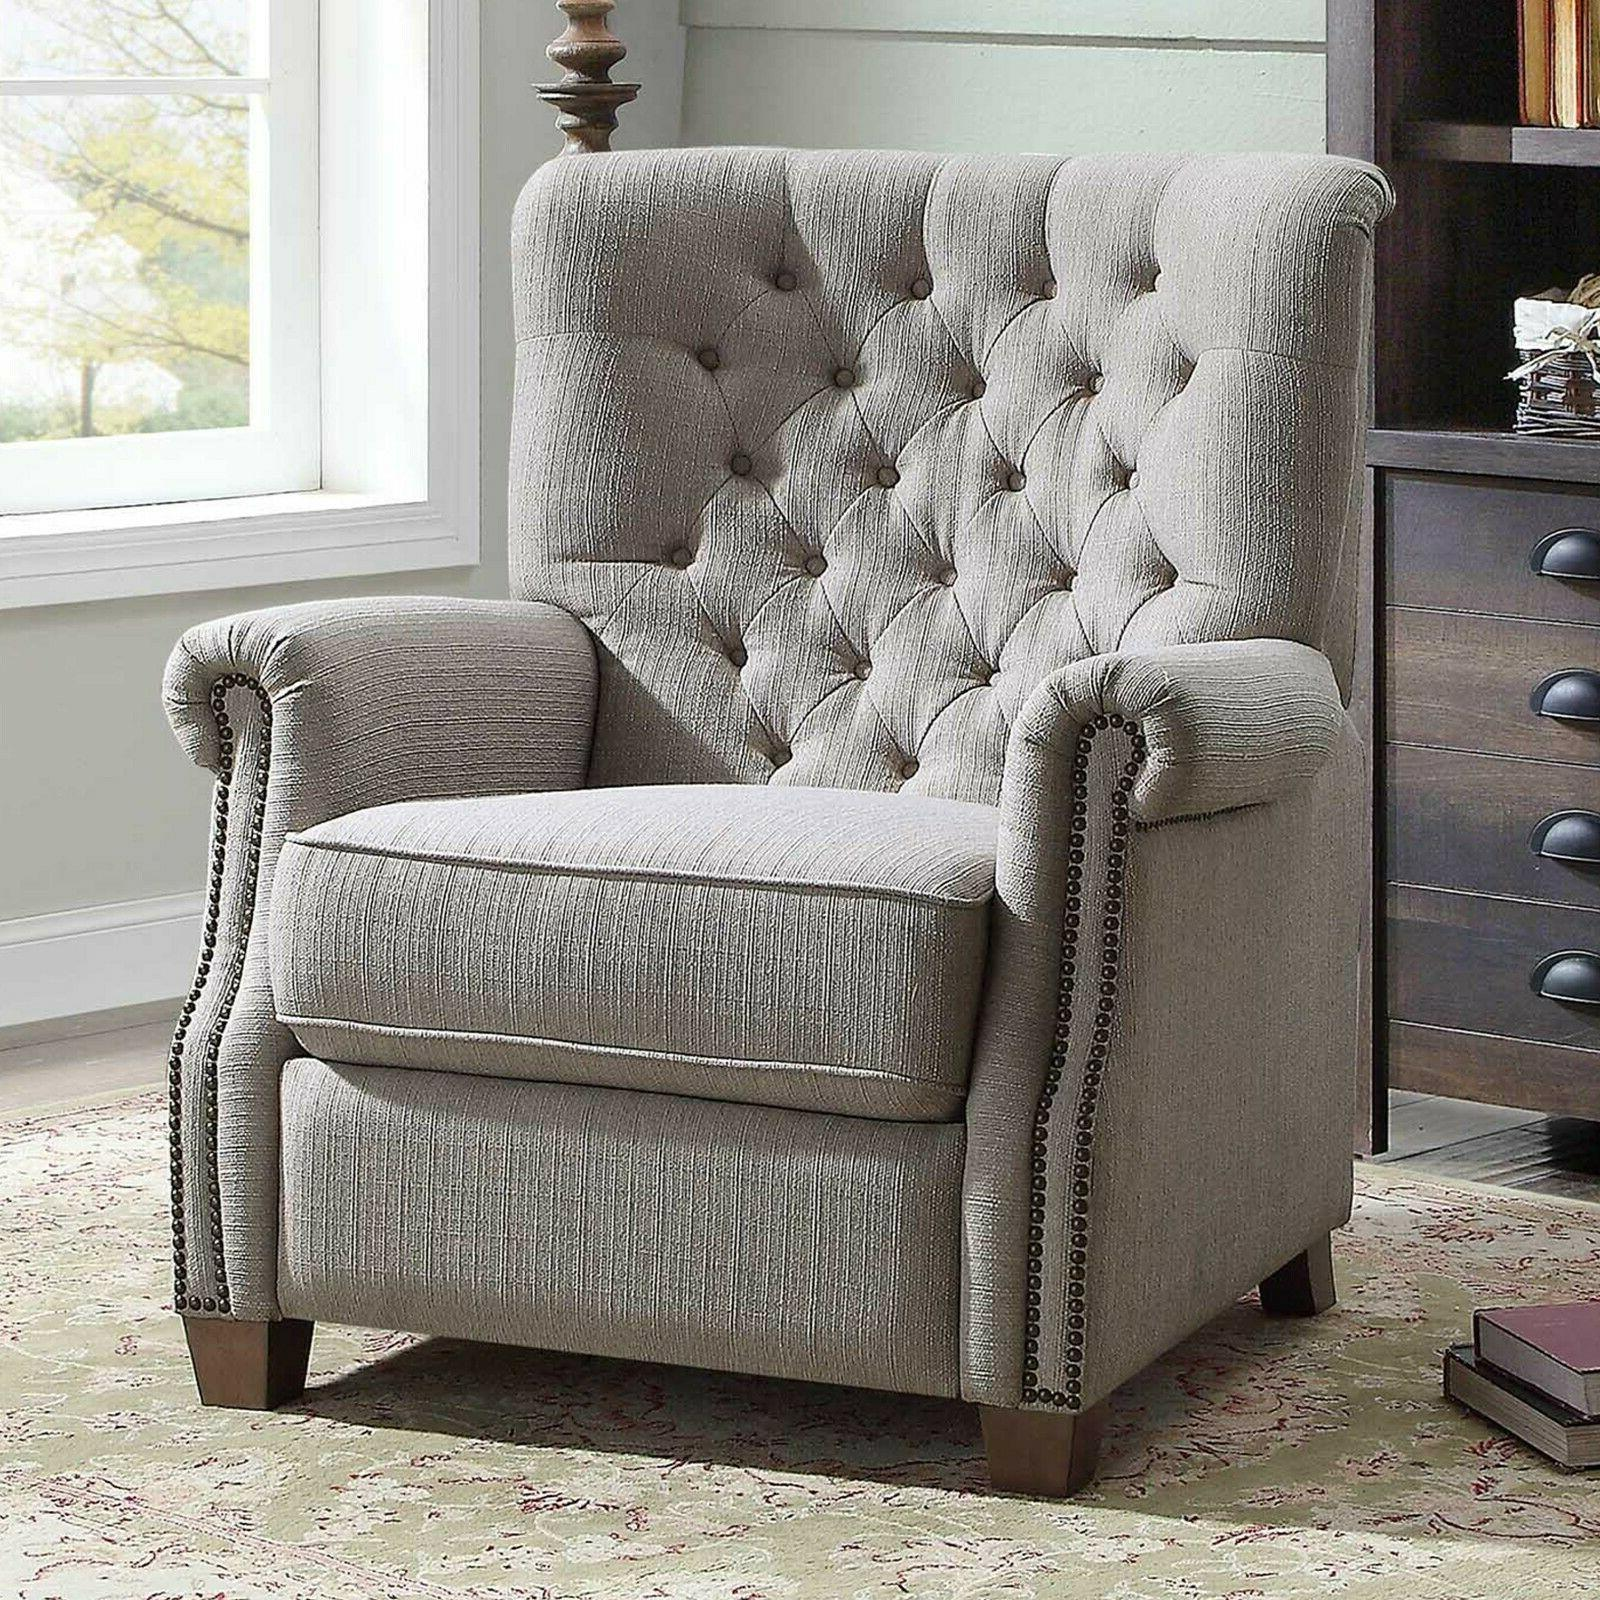 Tufted Elegant Push Back Recliner Chair Lazy Padded Seat Woo